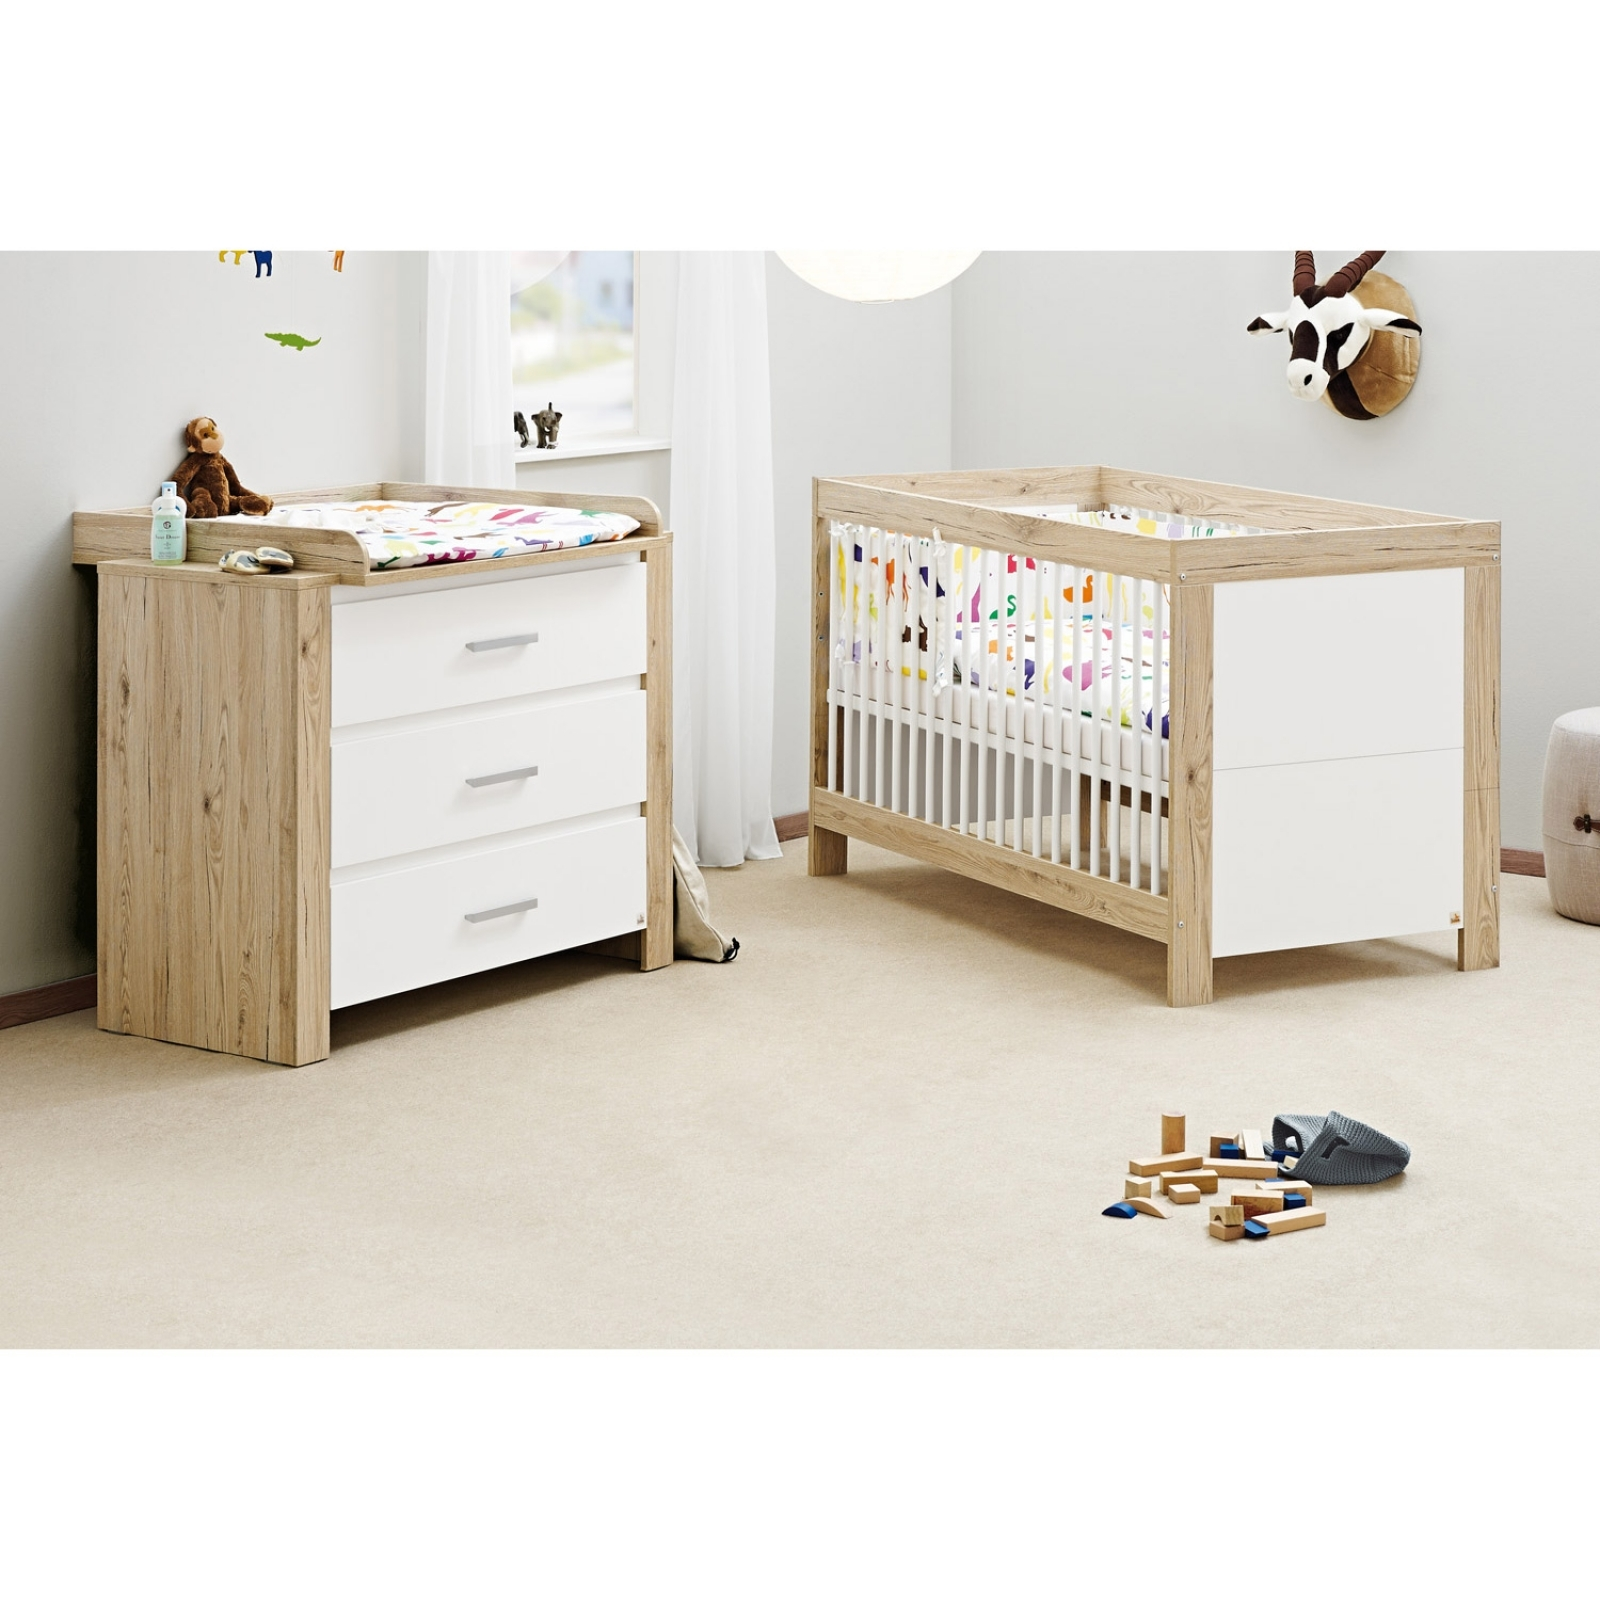 Lit b b volutif et commode langer ch ne massif naturel for Chambre bebe lit et commode